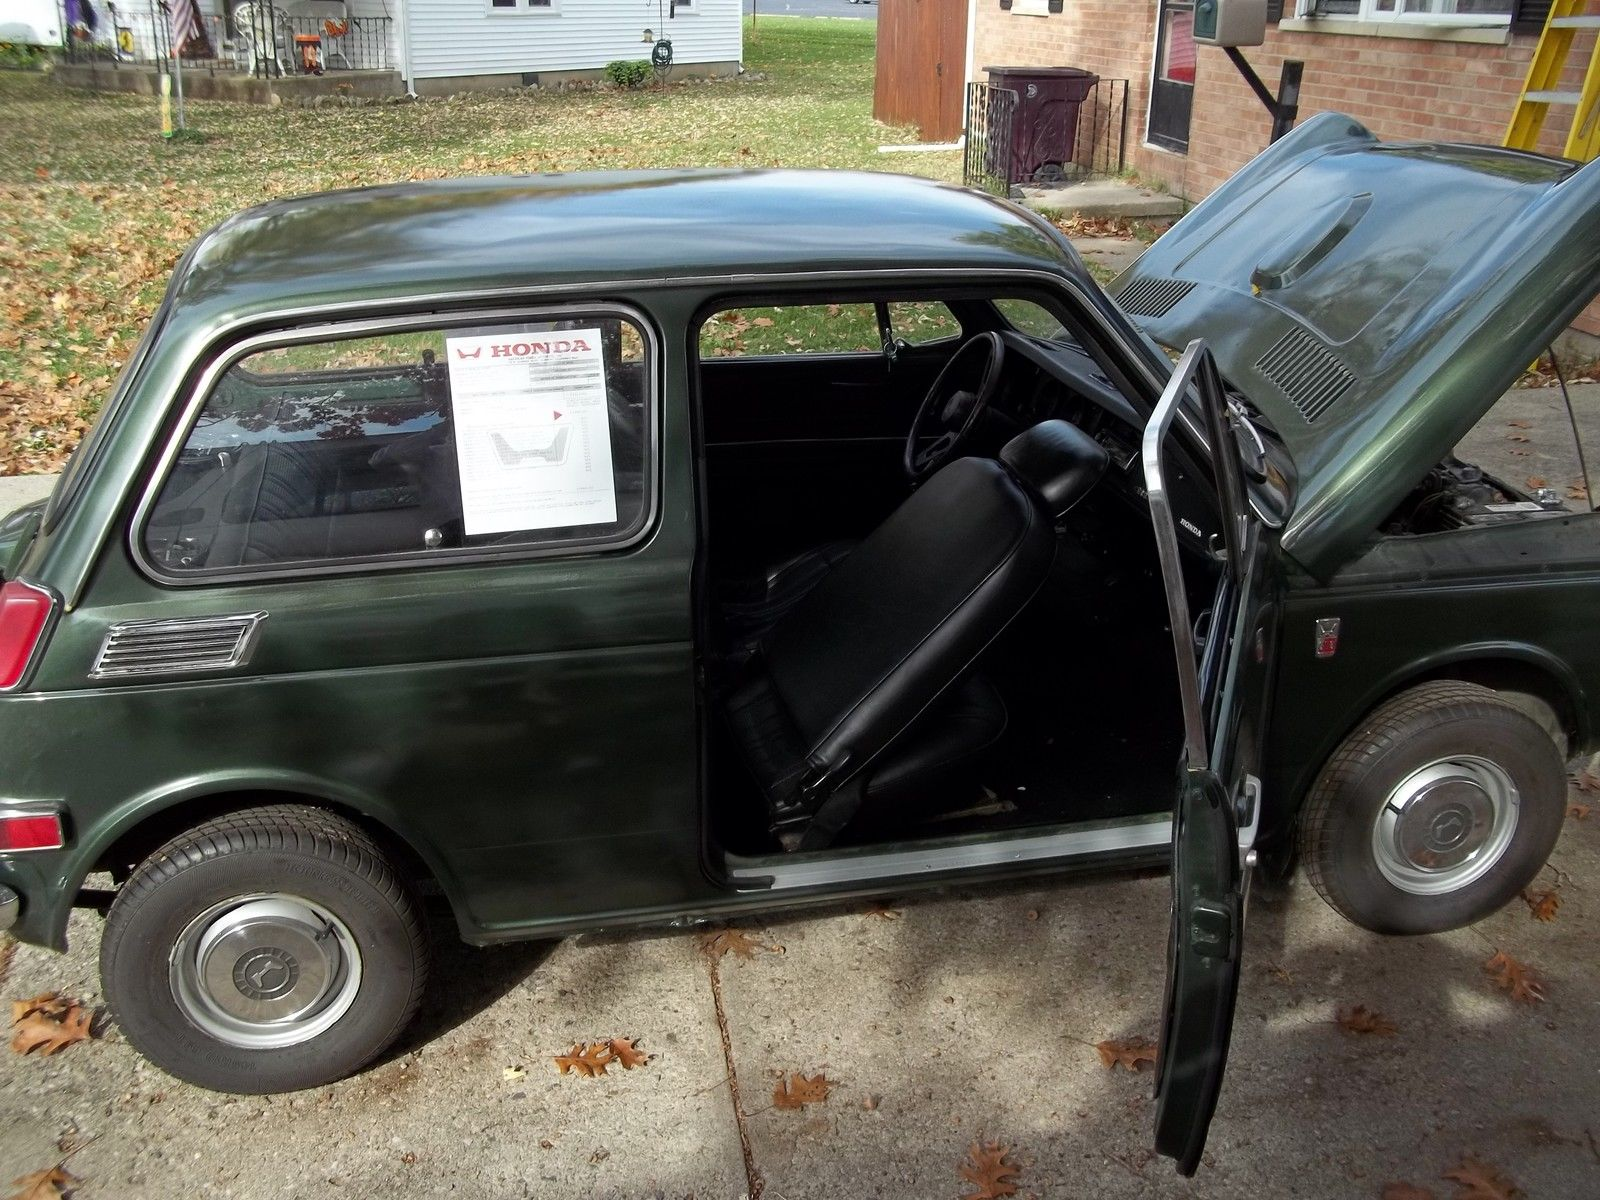 1971 Honda AN600 Sedan Rare Micro Japanese Car For Sale This Little Was Imported In To The USA Is And It Must Been A Scary Ride